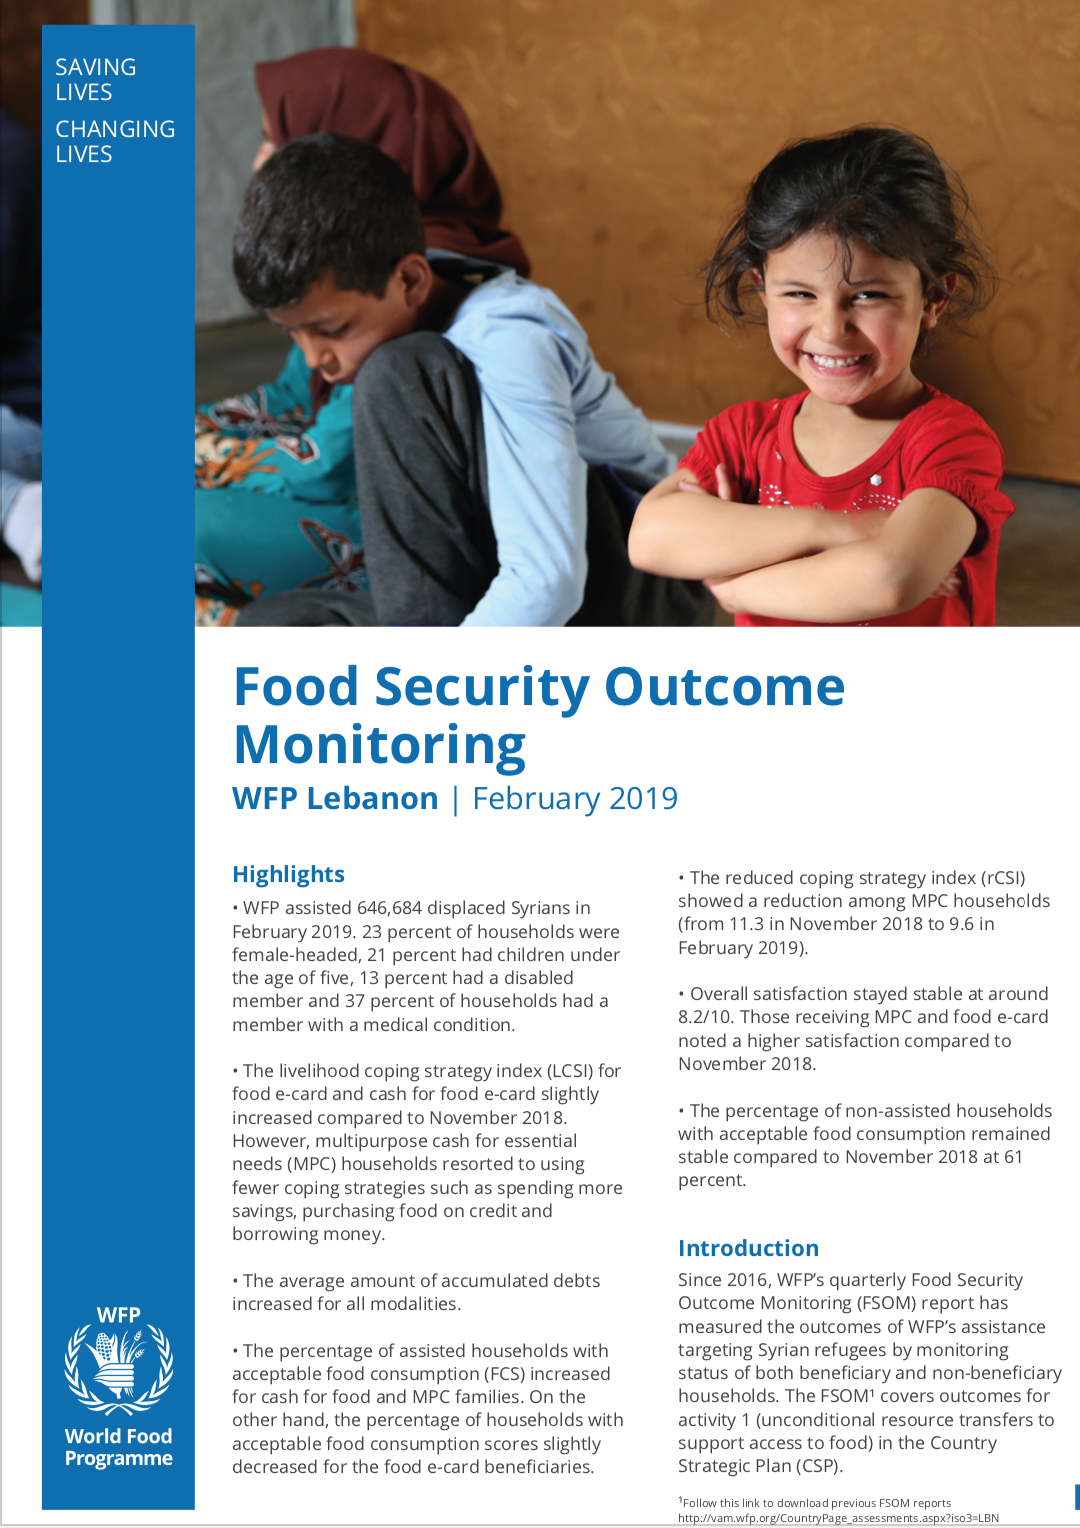 Food Security Outcome Monitoring Report (Feb 2019)